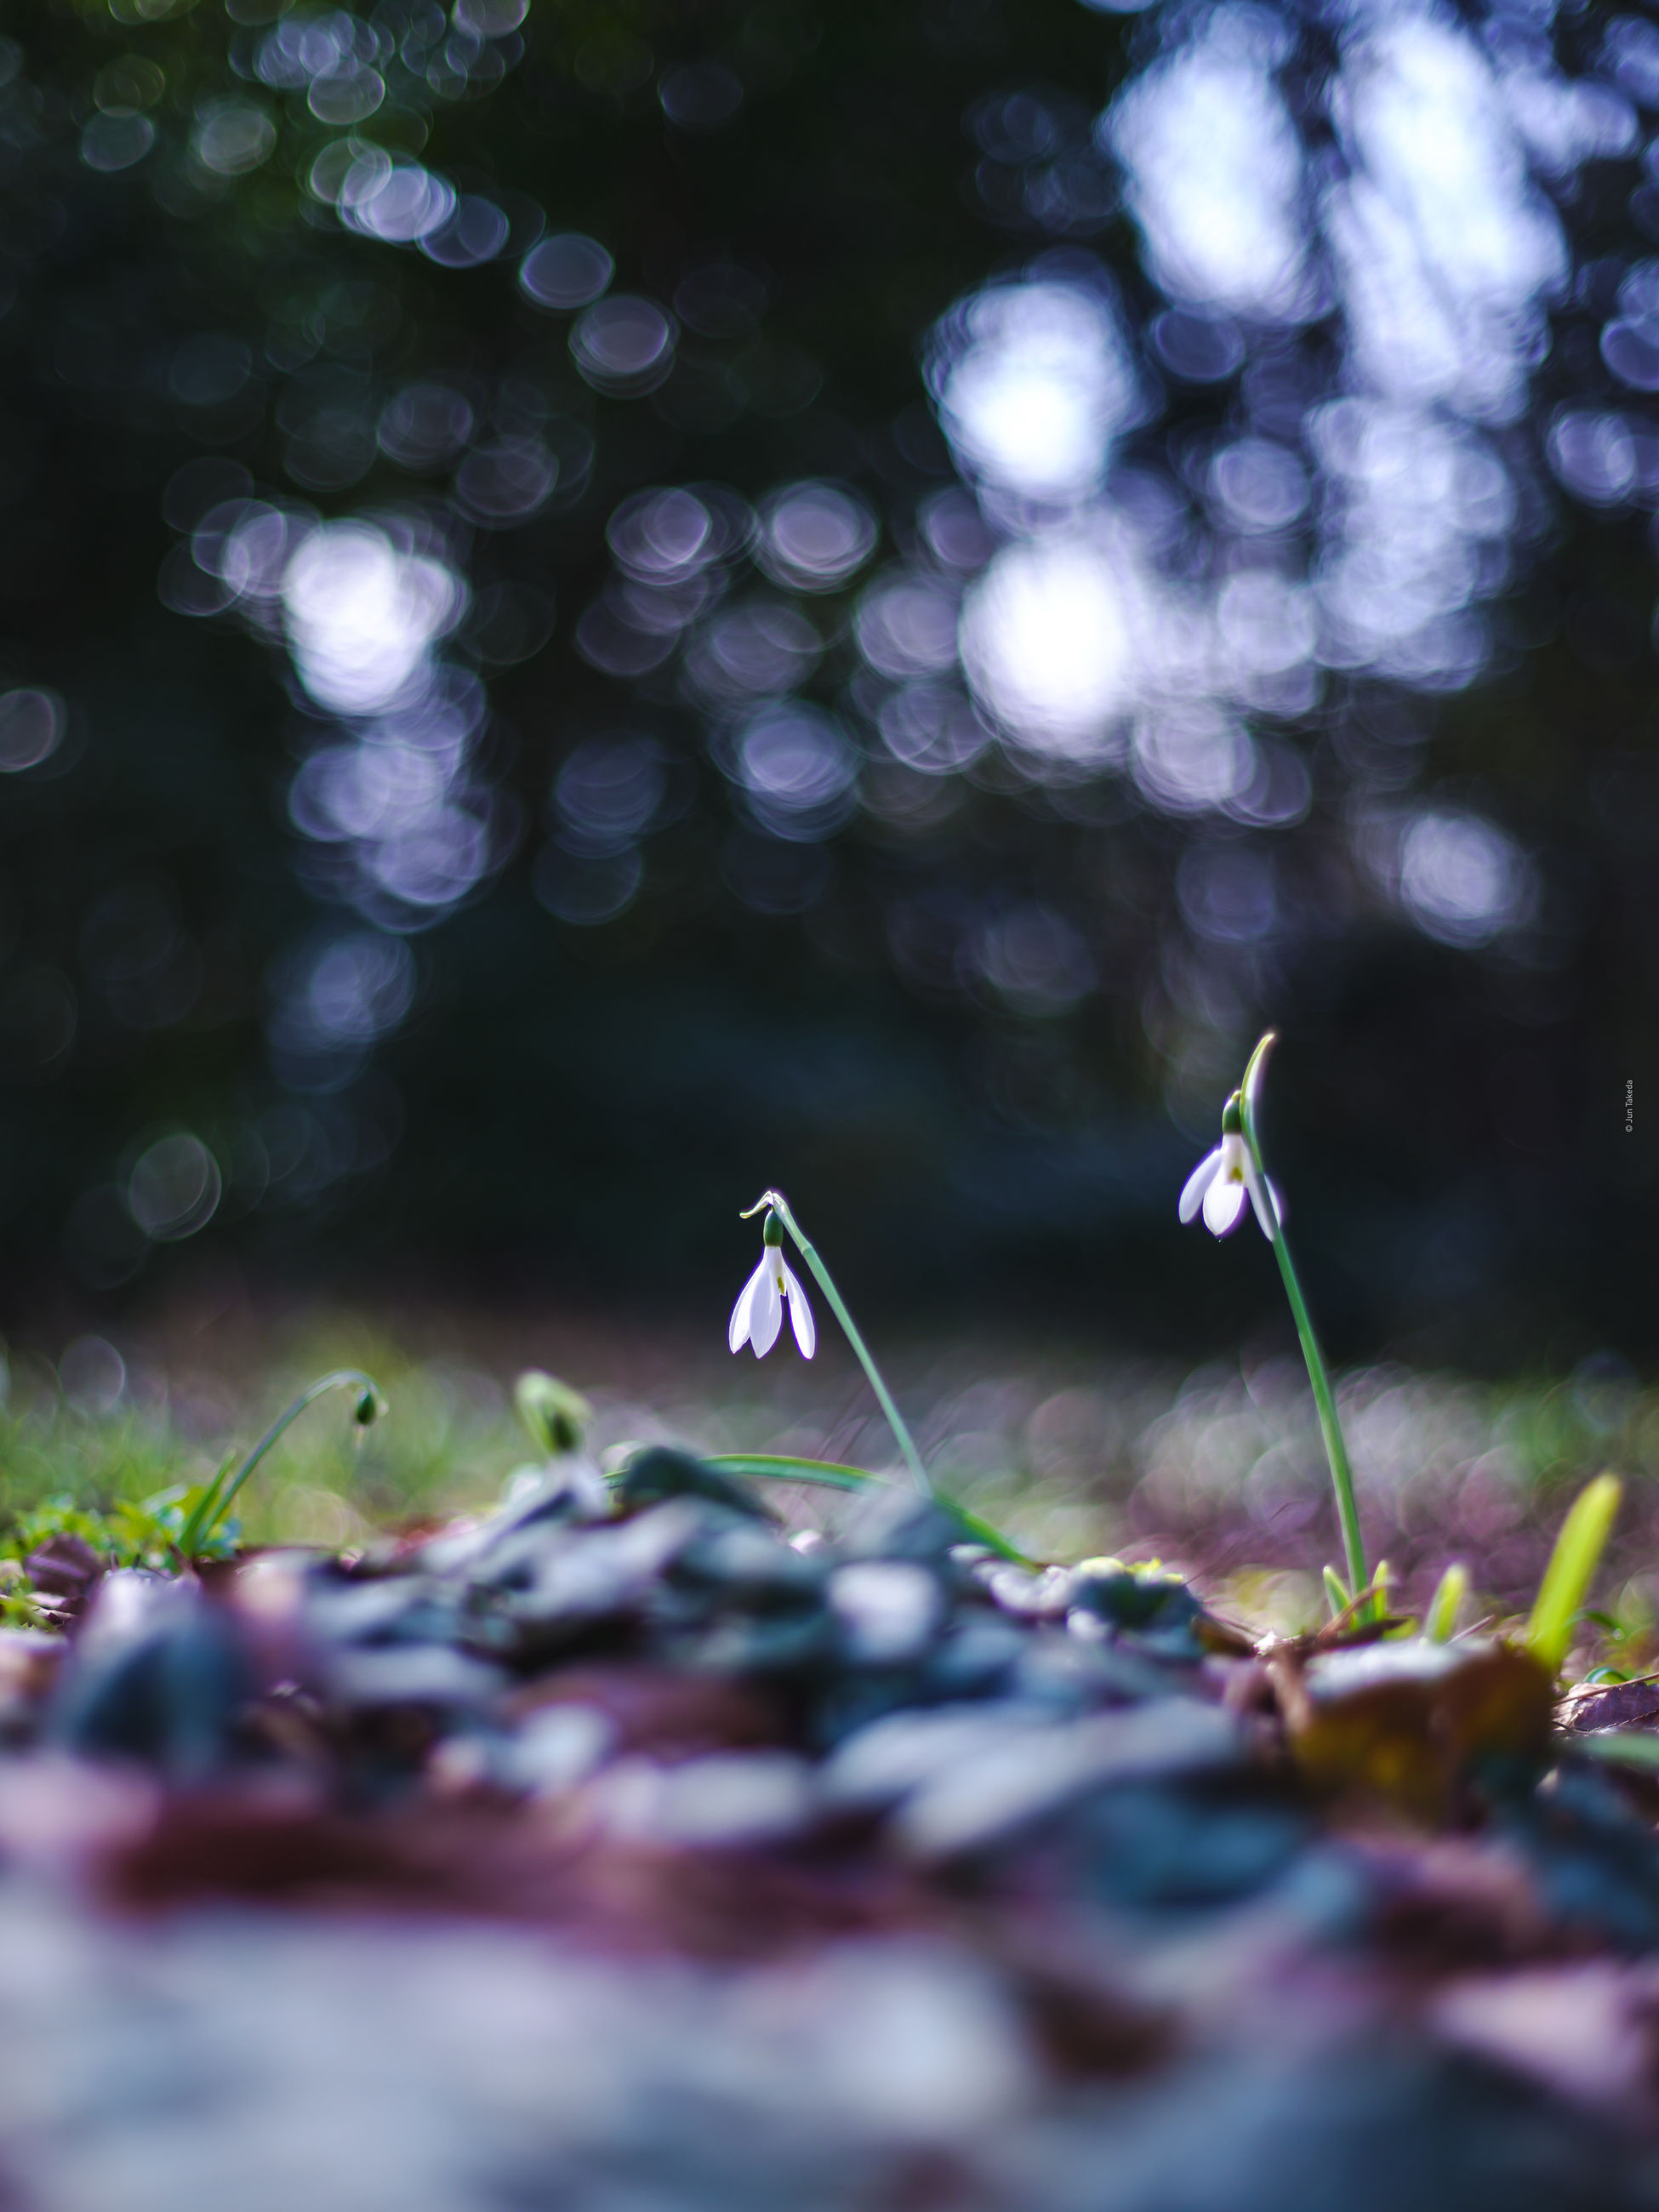 plant, nature, leaf, sunlight, light, flower, selective focus, tree, no people, green, branch, forest, outdoors, land, macro photography, plant part, beauty in nature, defocused, tranquility, environment, reflection, autumn, day, close-up